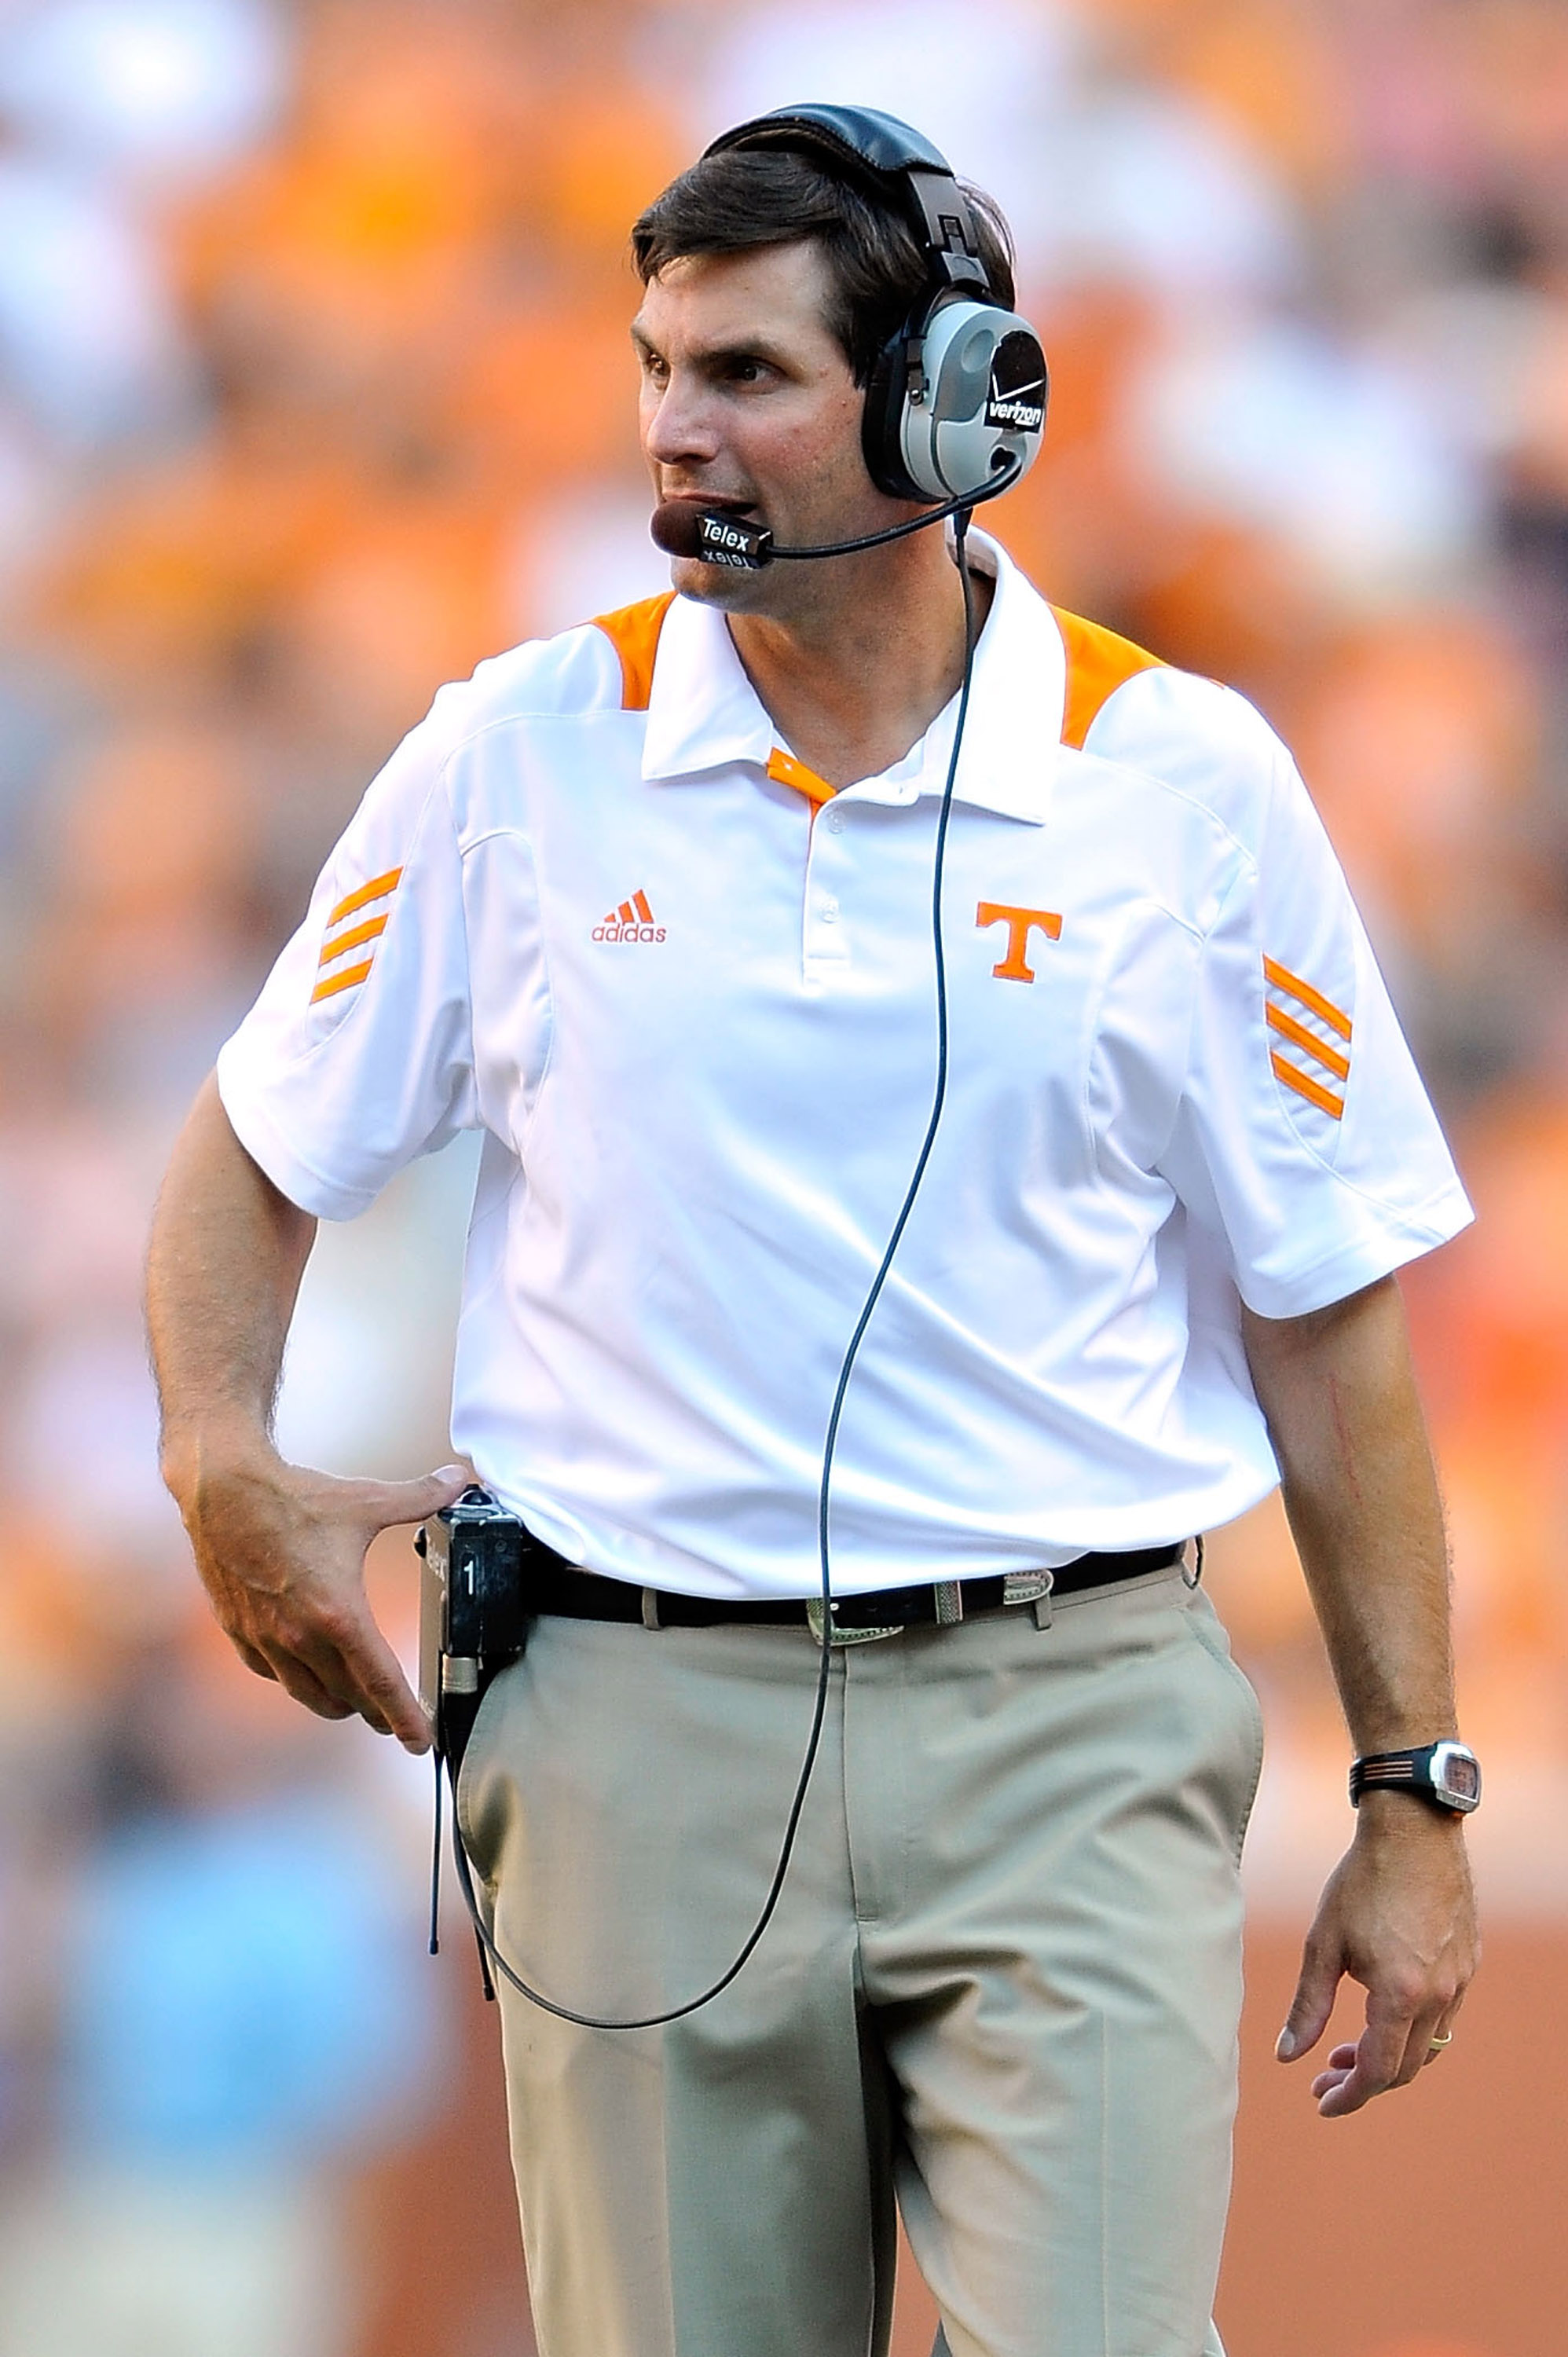 KNOXVILLE, TN - SEPTEMBER 18:  Coach Derek Dooley of the Tennessee Volunteers watches his team in action against the Florida Gators  at Neyland Stadium on September 18, 2010 in Knoxville, Tennessee. Florida won 31-17.  (Photo by Grant Halverson/Getty Imag